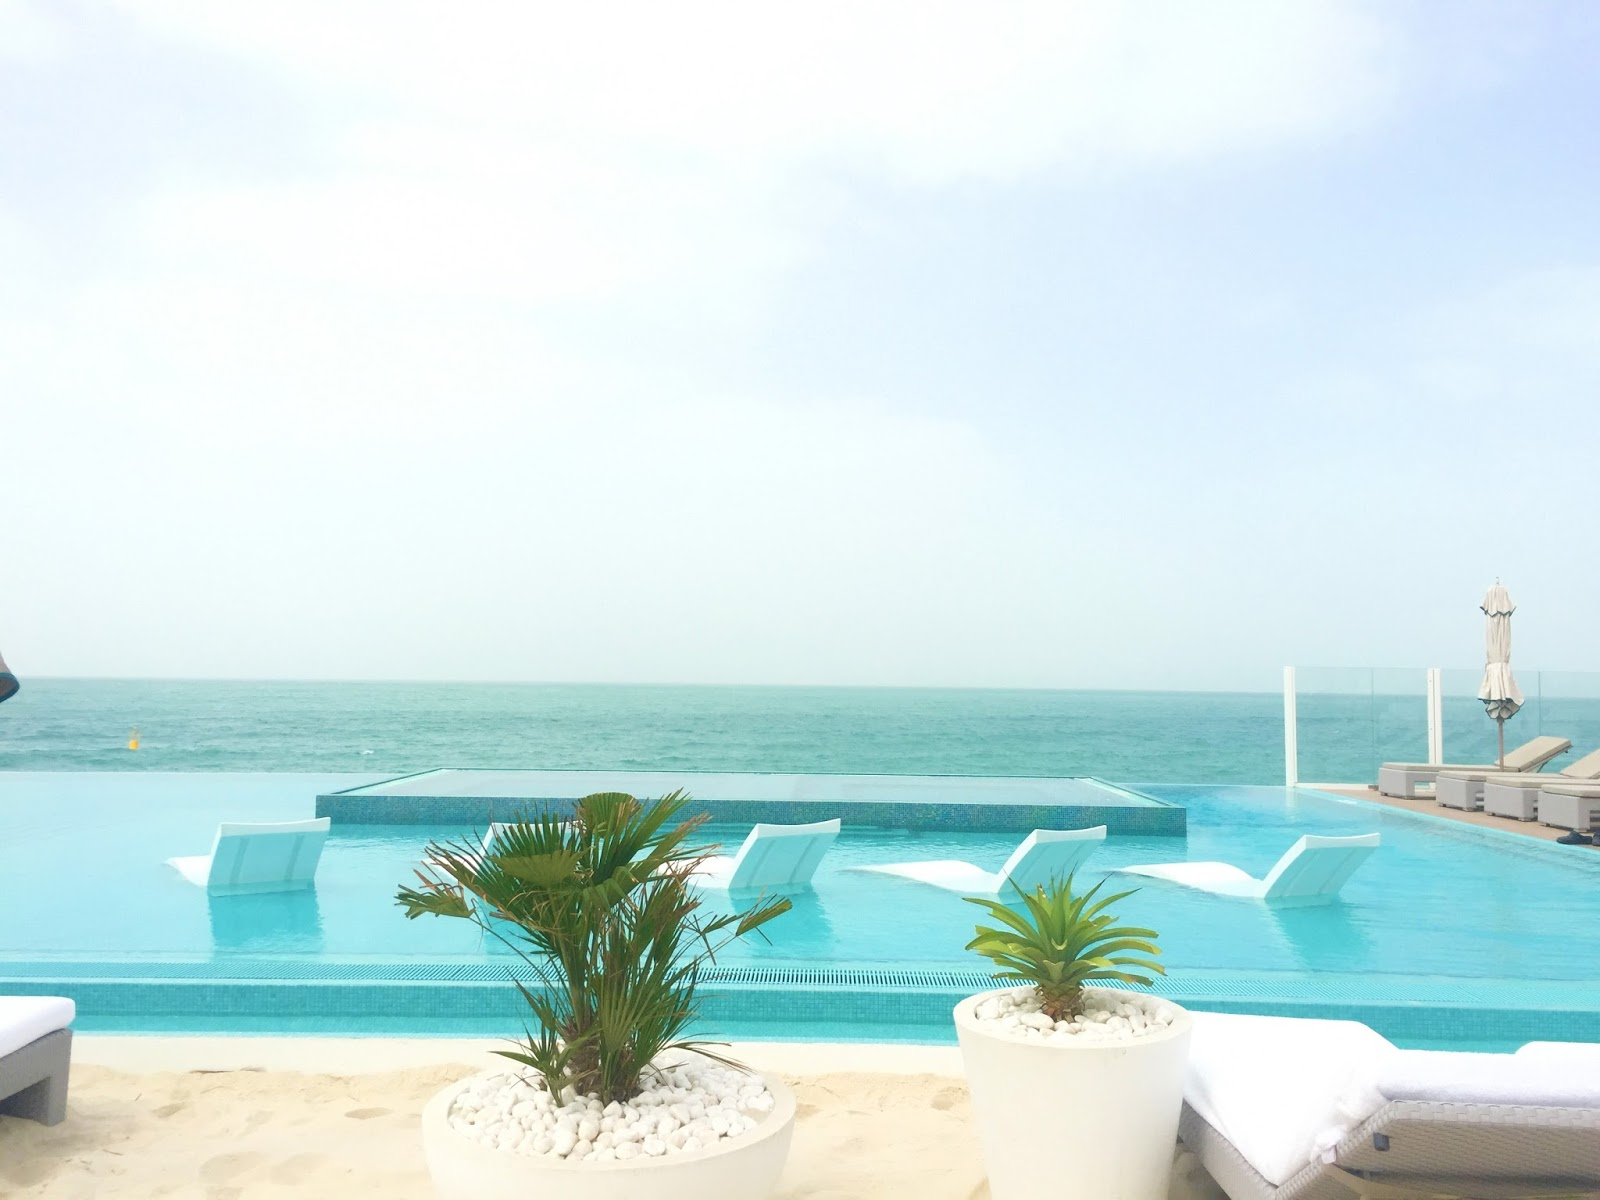 Burj Al Arab Infinity Pool - New Pool Deck - Best Luxury Hotels in Dubai